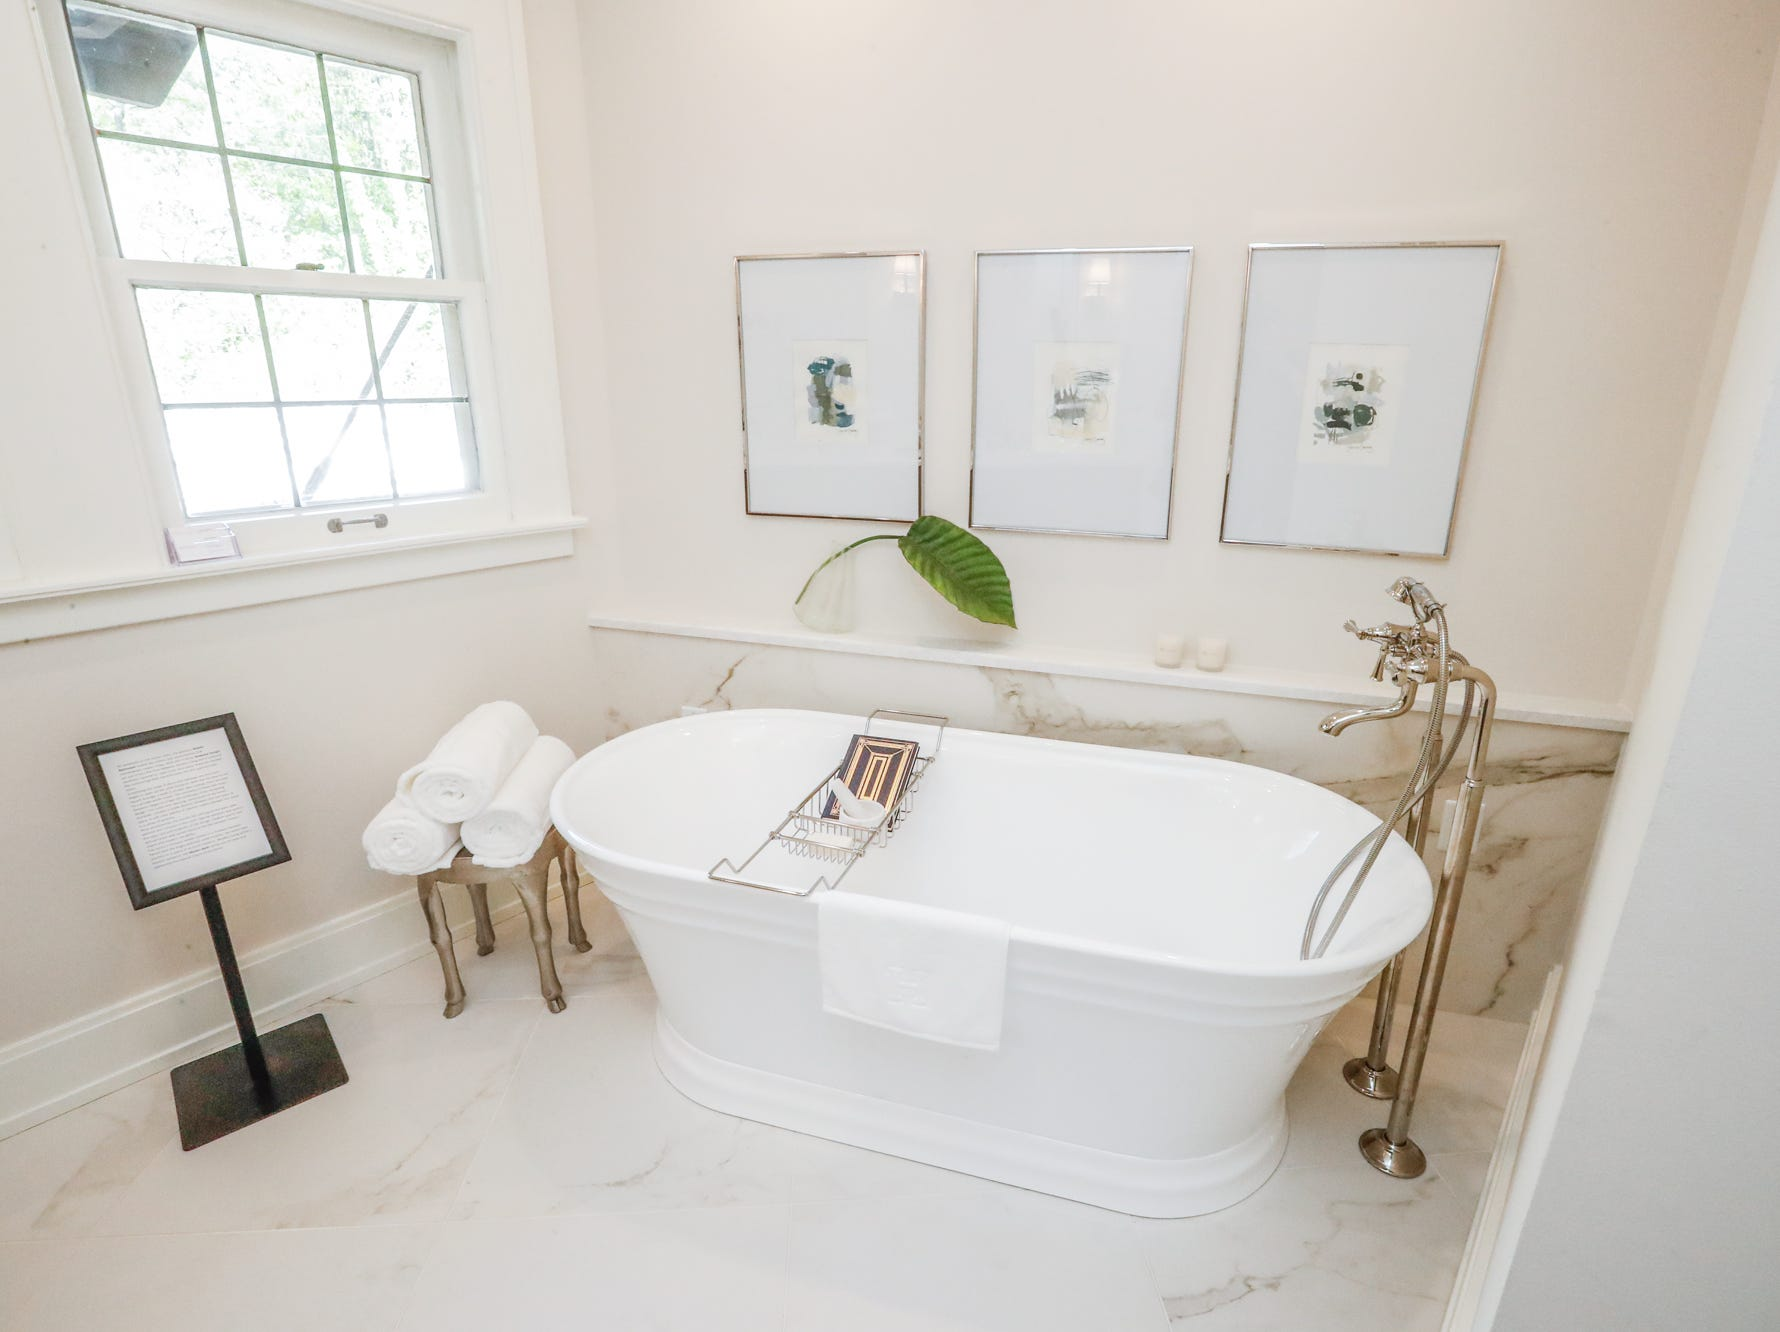 """The """"Master Bath"""" designed by Ashley Bedwell and Robert Bose, of Rowland Design Inc., inside The 58th annual St. Margaret's Hospital Guild Decorators' Show House and Gardens, located at 4160 Washington Blvd., Indianapolis, on Wednesday, May 8, 2019."""